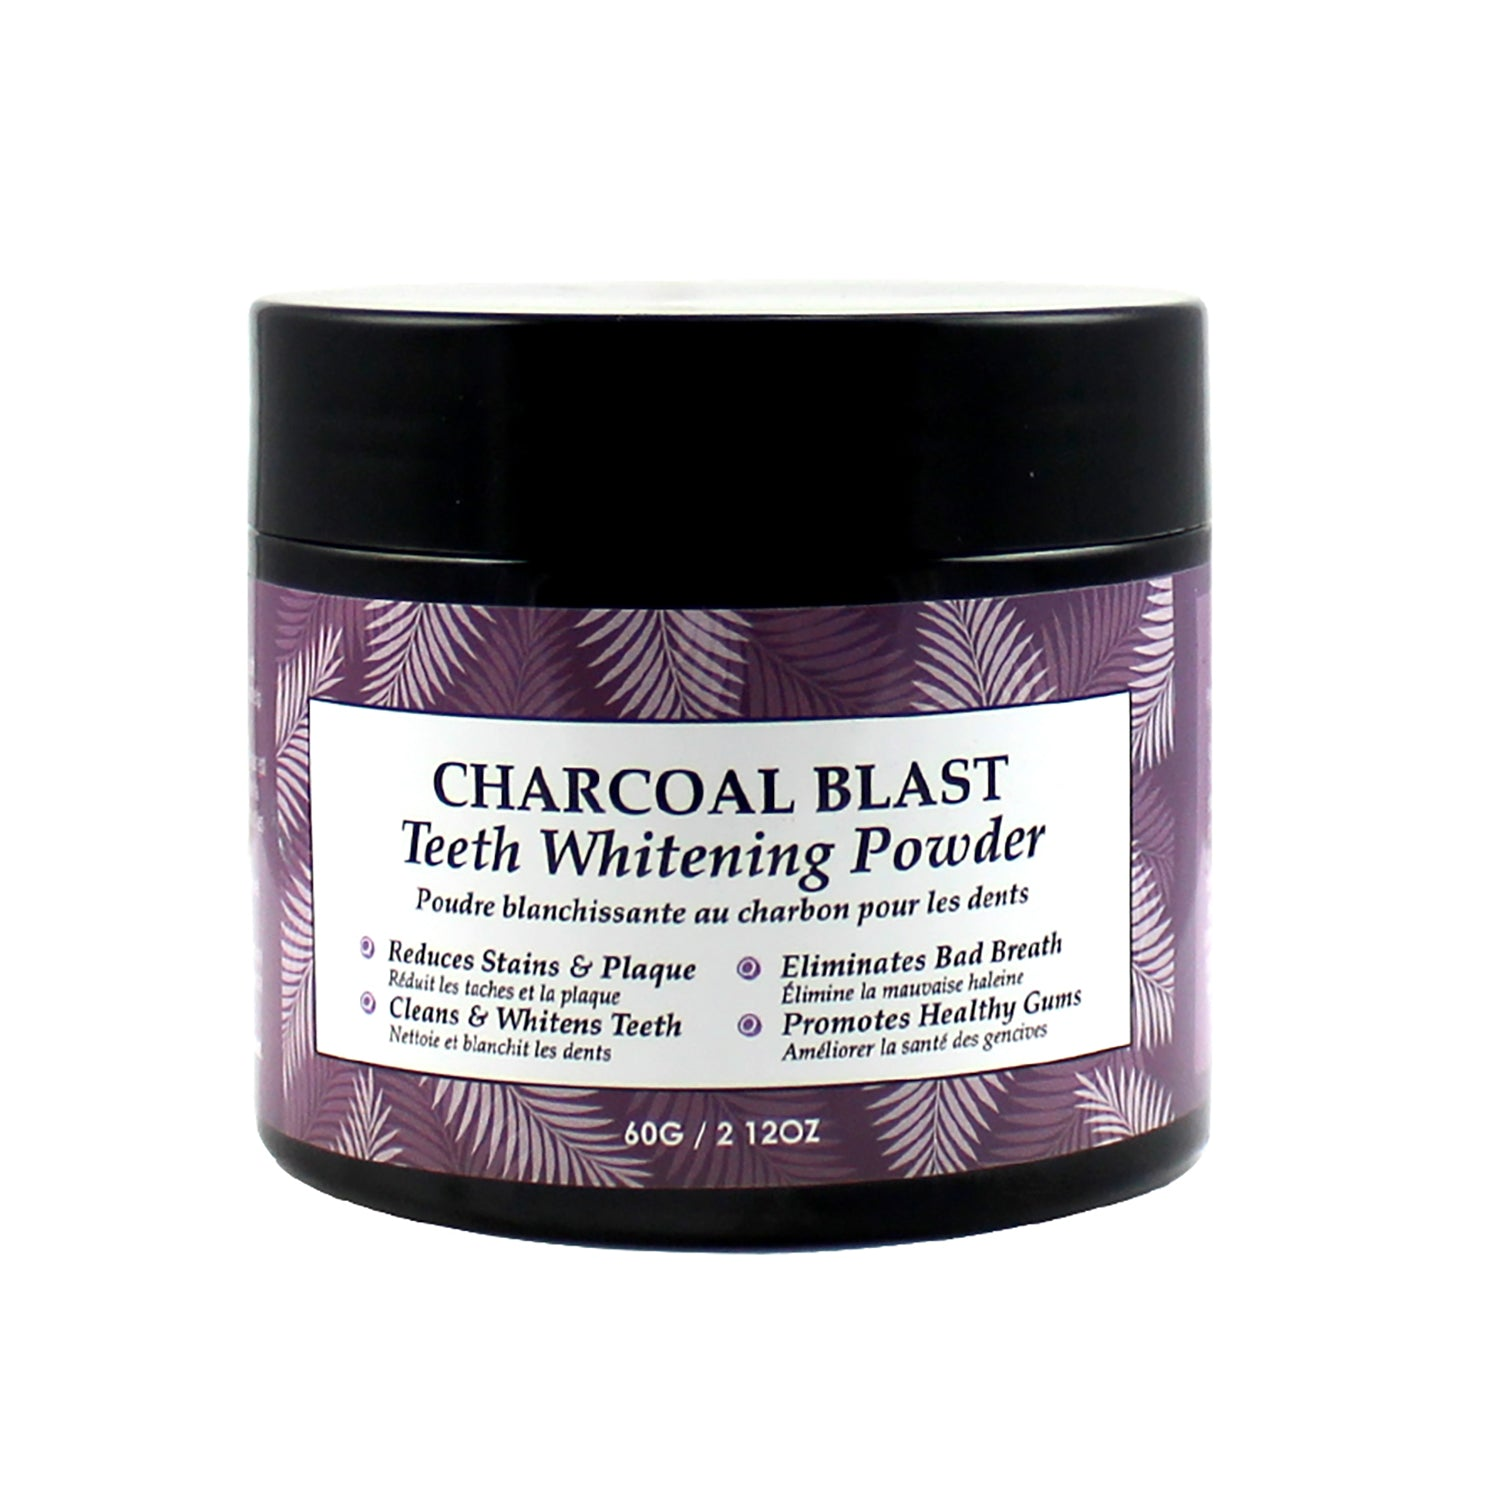 Vivo Per Lei Charcoal Blast Teeth Whitening Powder